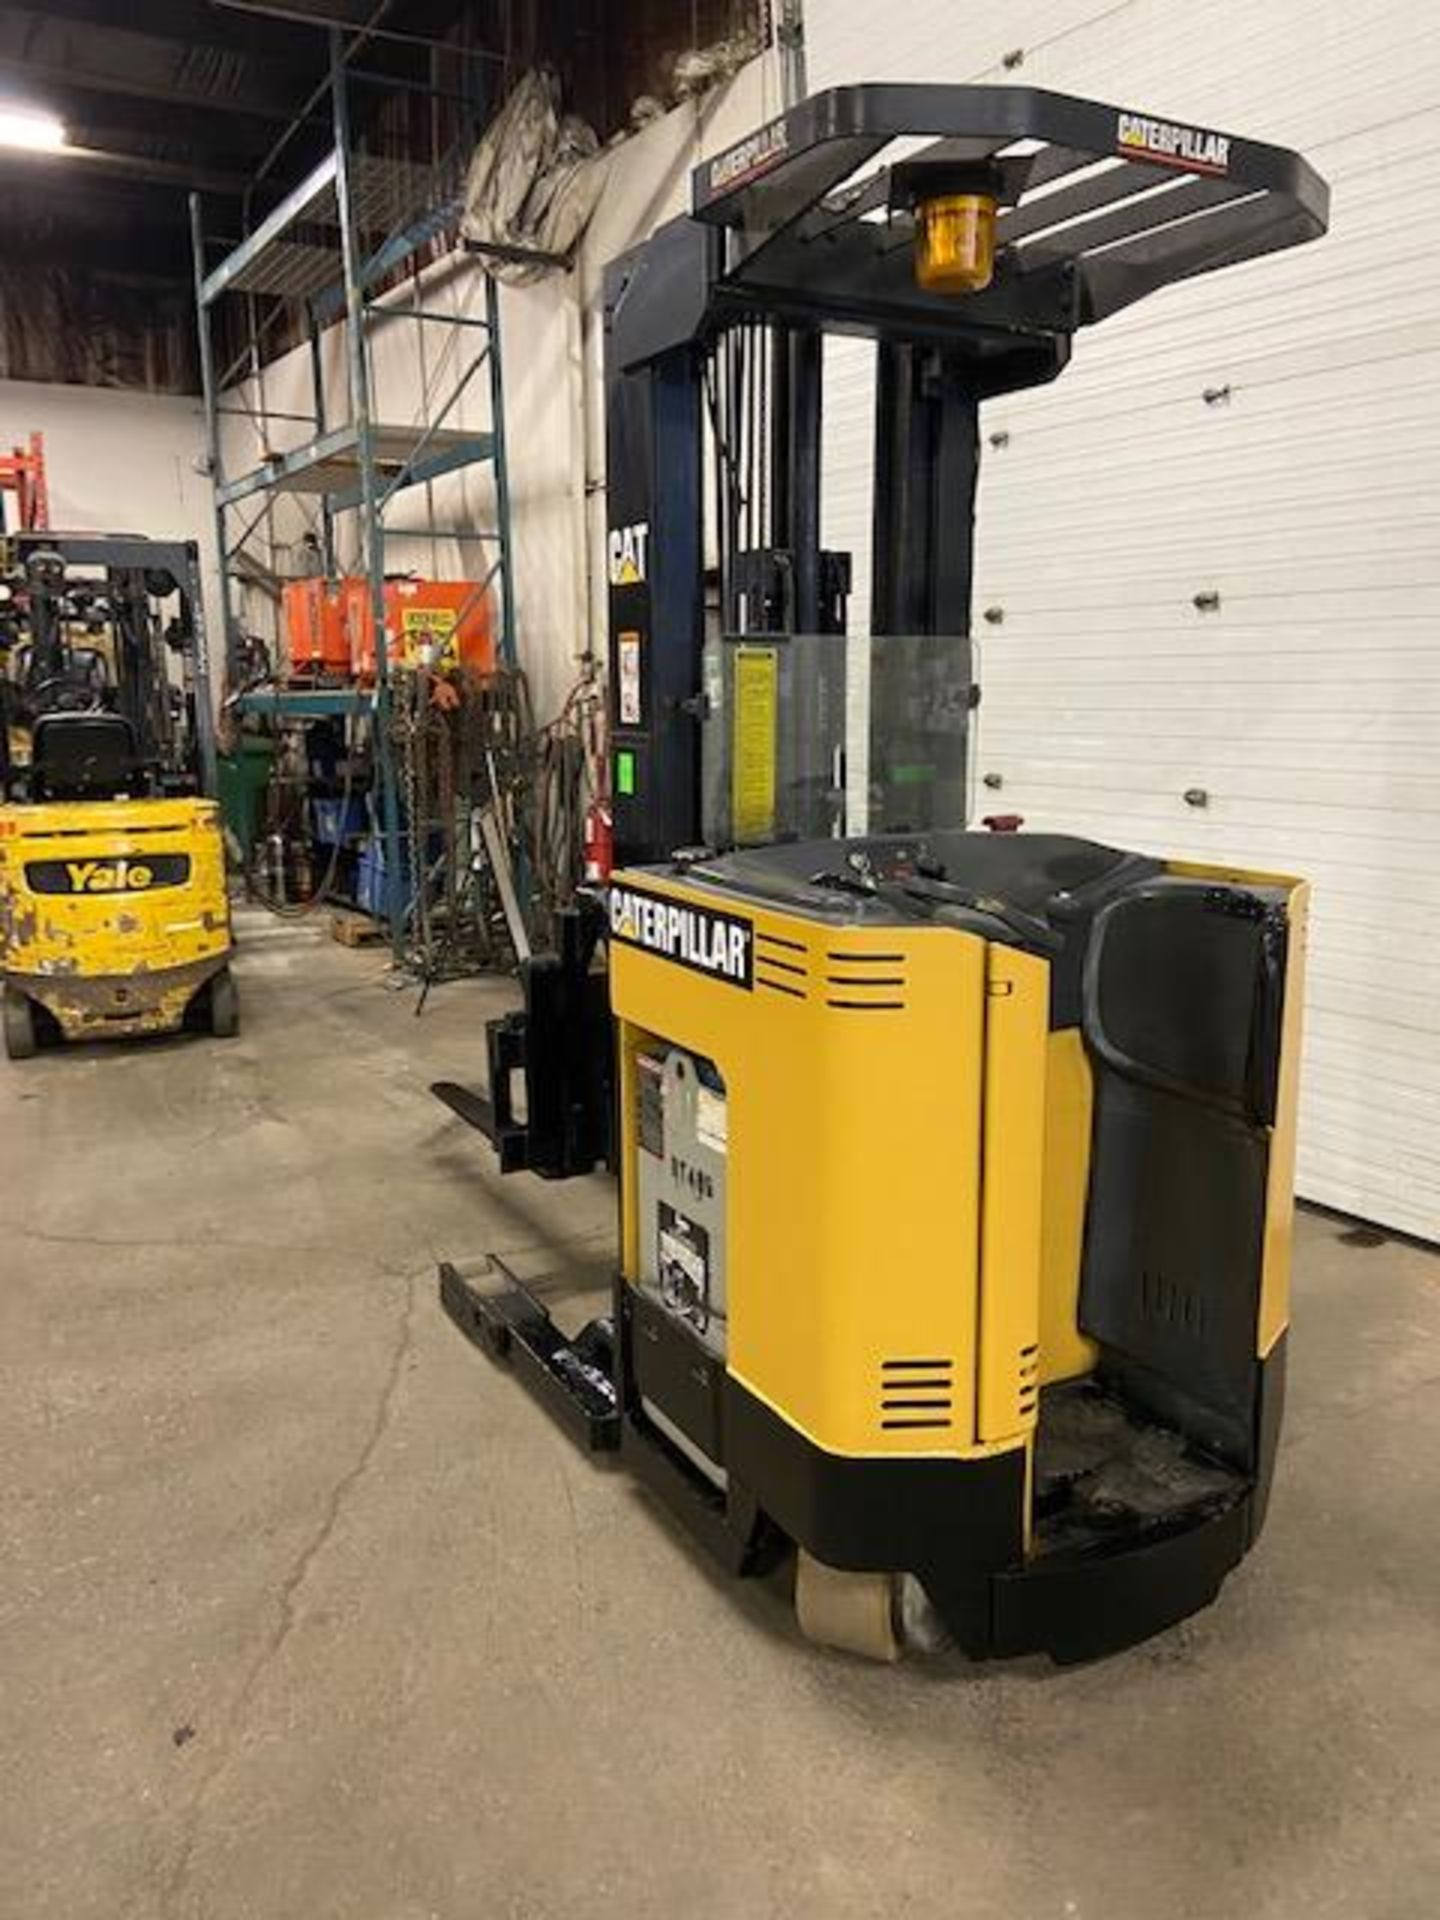 FREE CUSTOMS - CAT Reach Truck Pallet Lifter REACH TRUCK electric 4000lbs with sideshift - Image 3 of 3